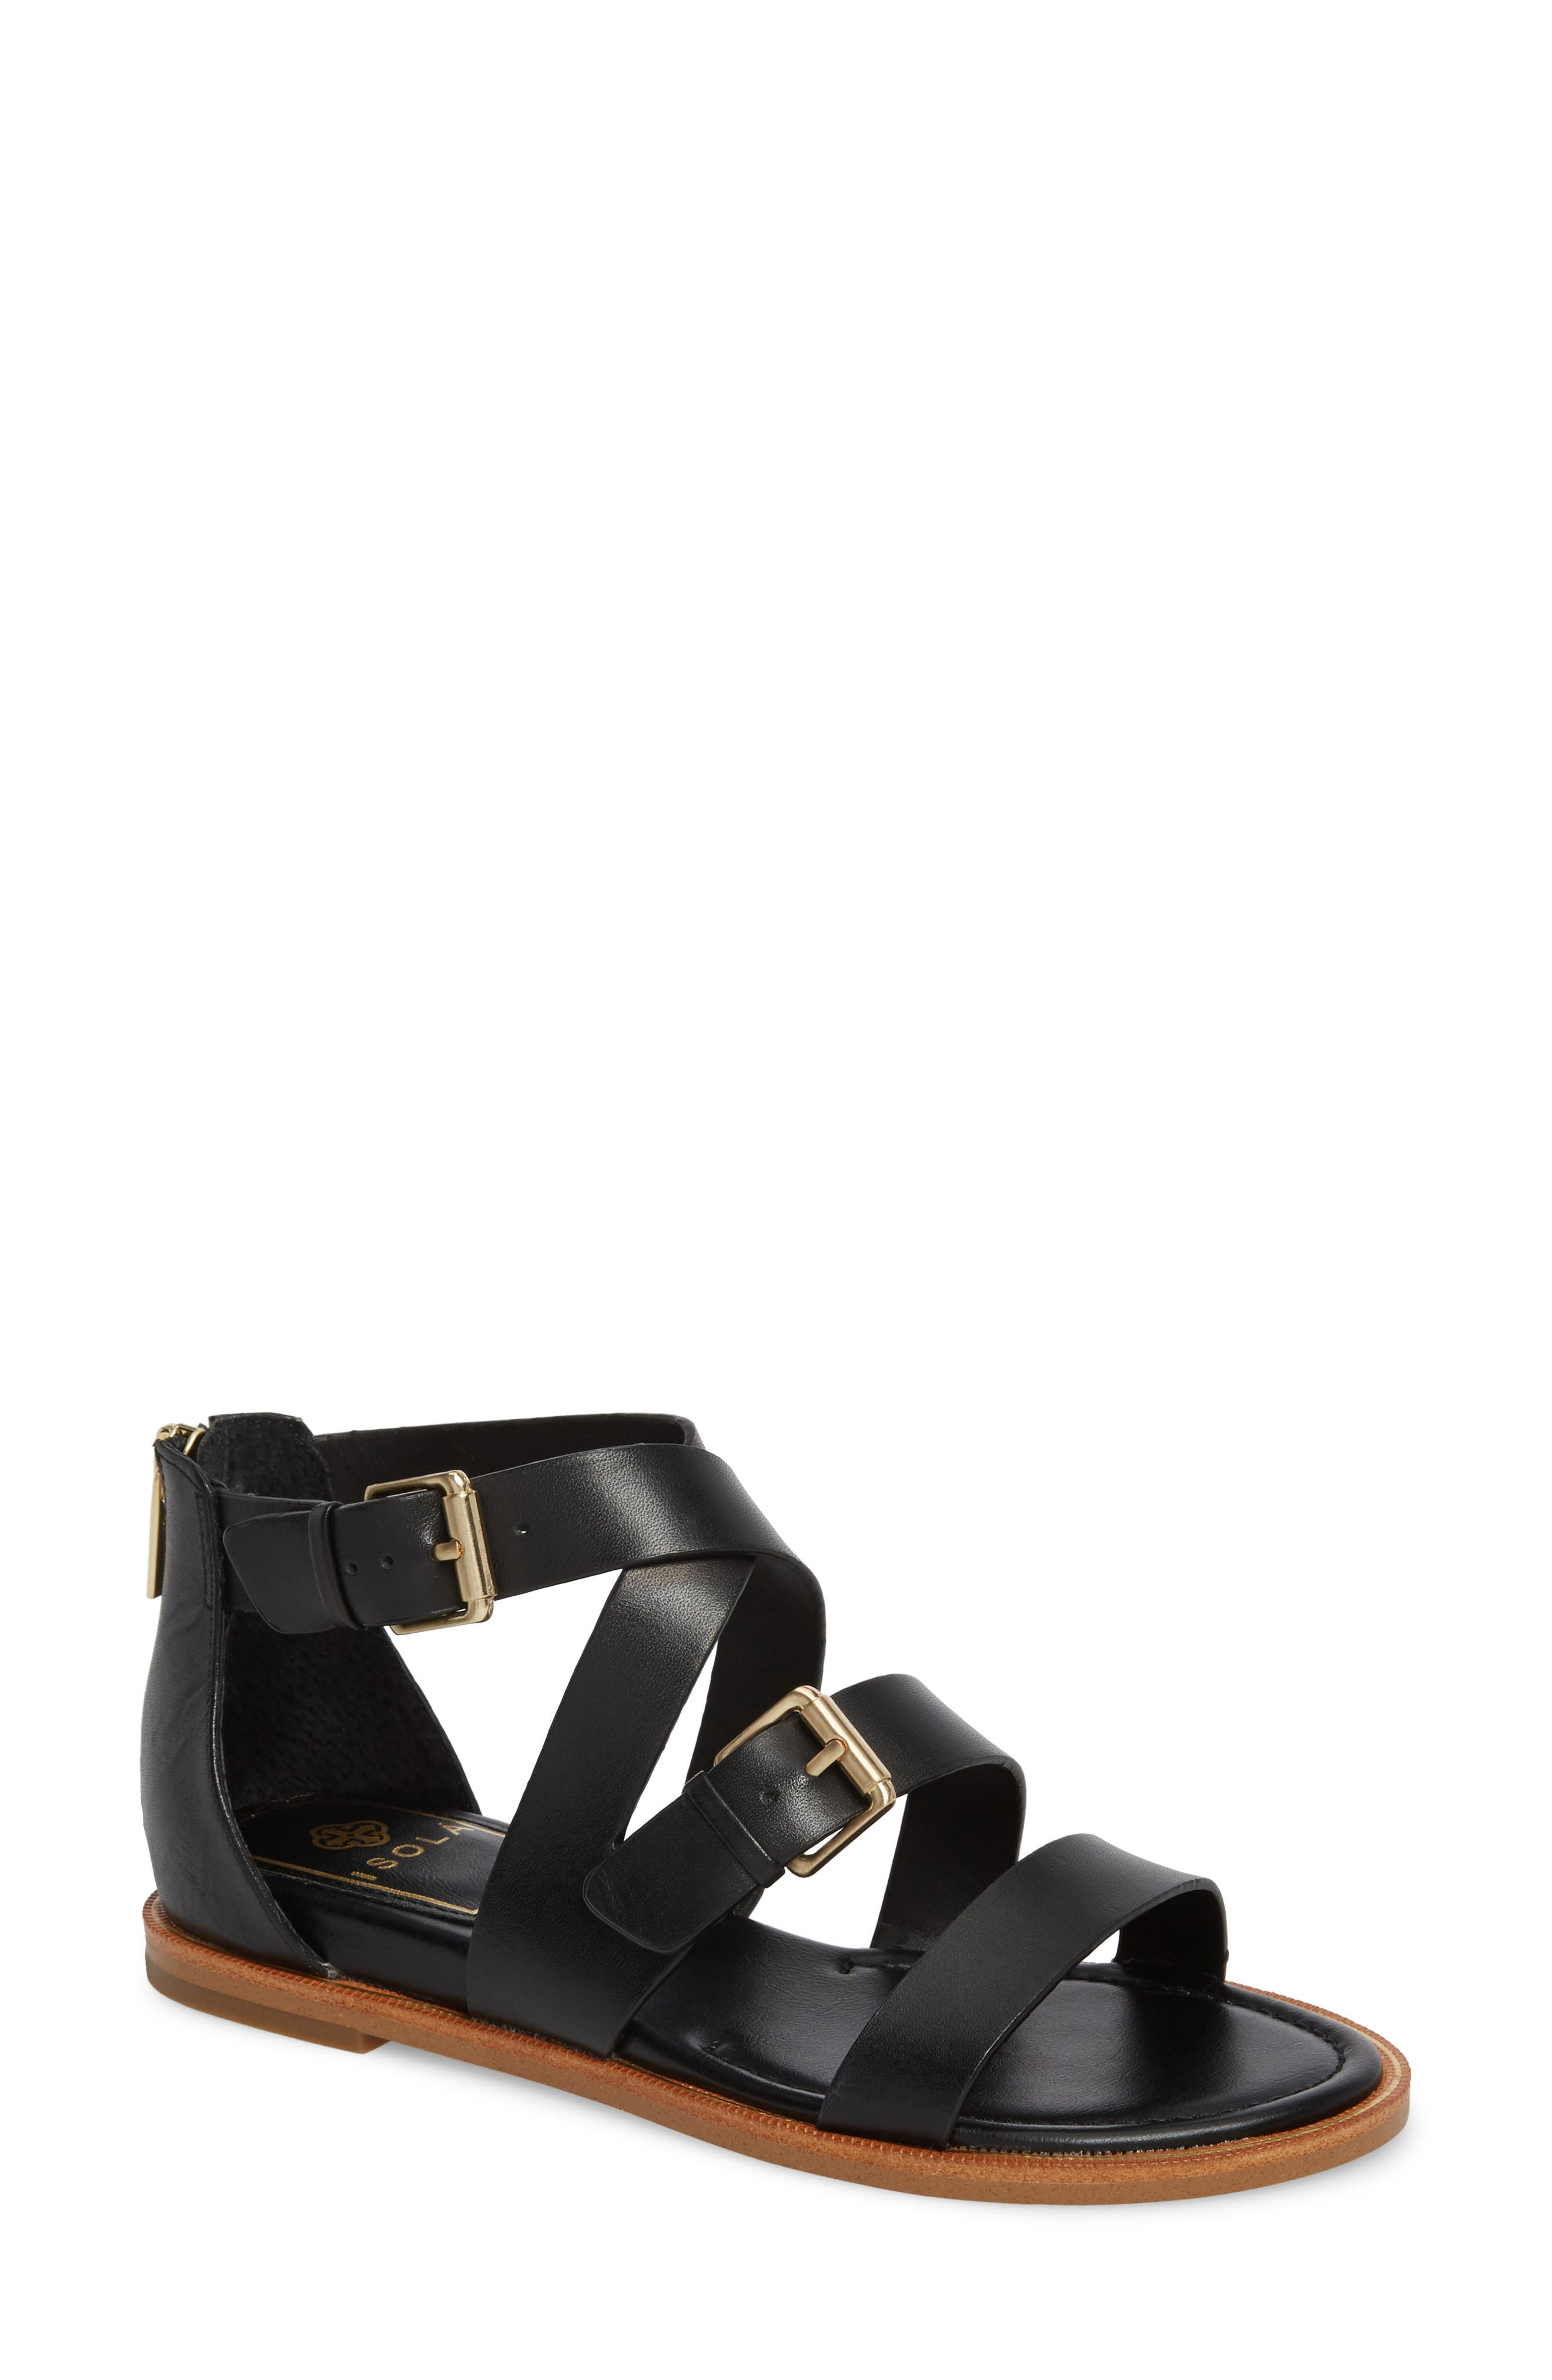 Isola Sharni Sandal,                         Main,                         color, 001